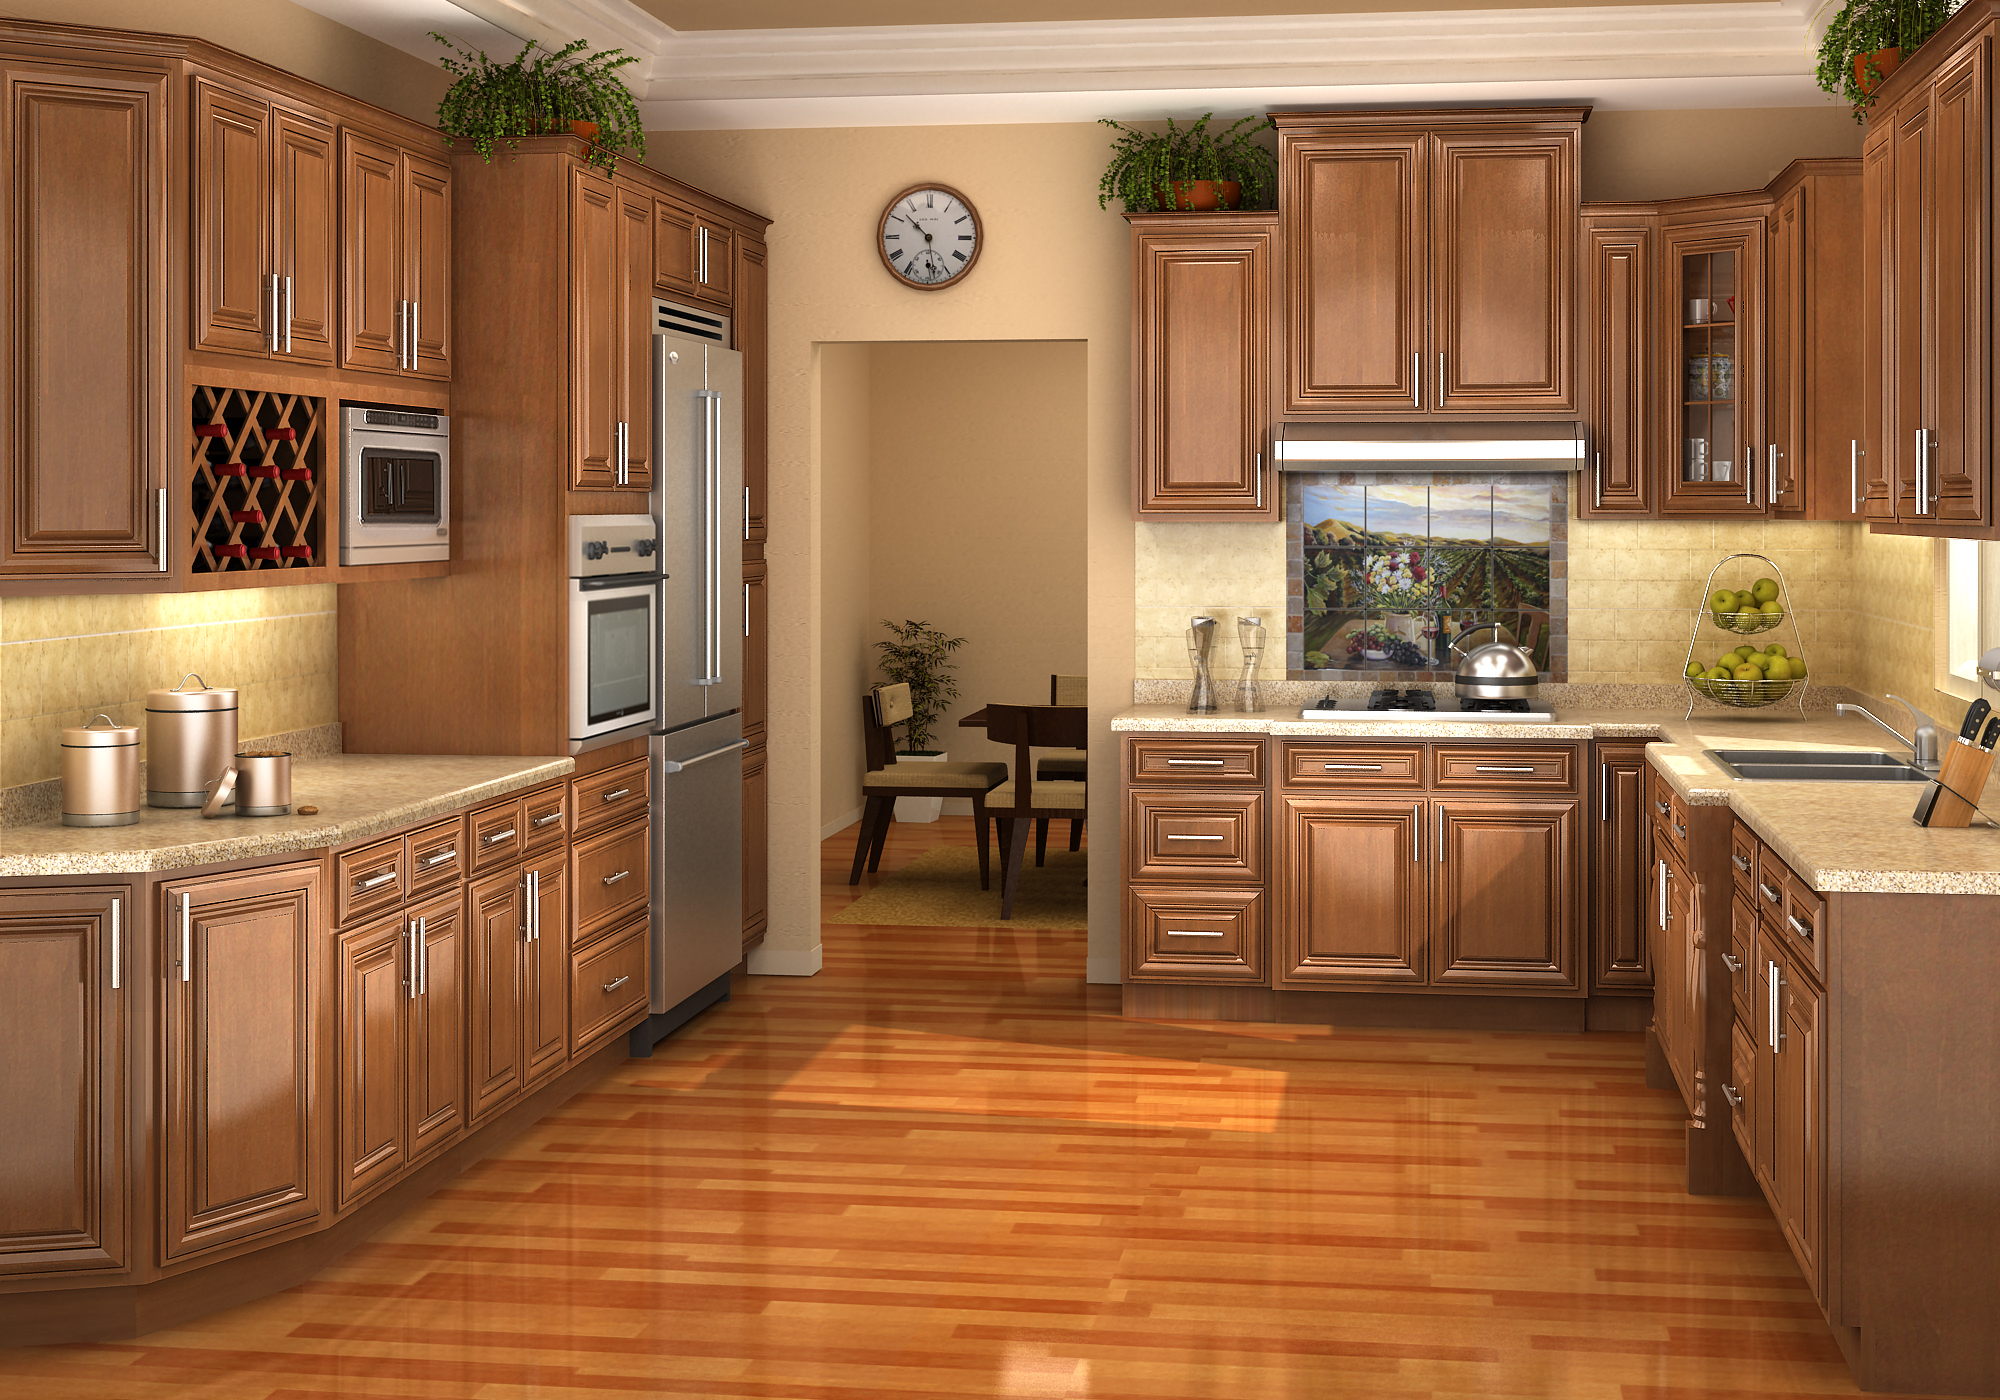 IKS Chestnut Pillow Kitchen Cabinets